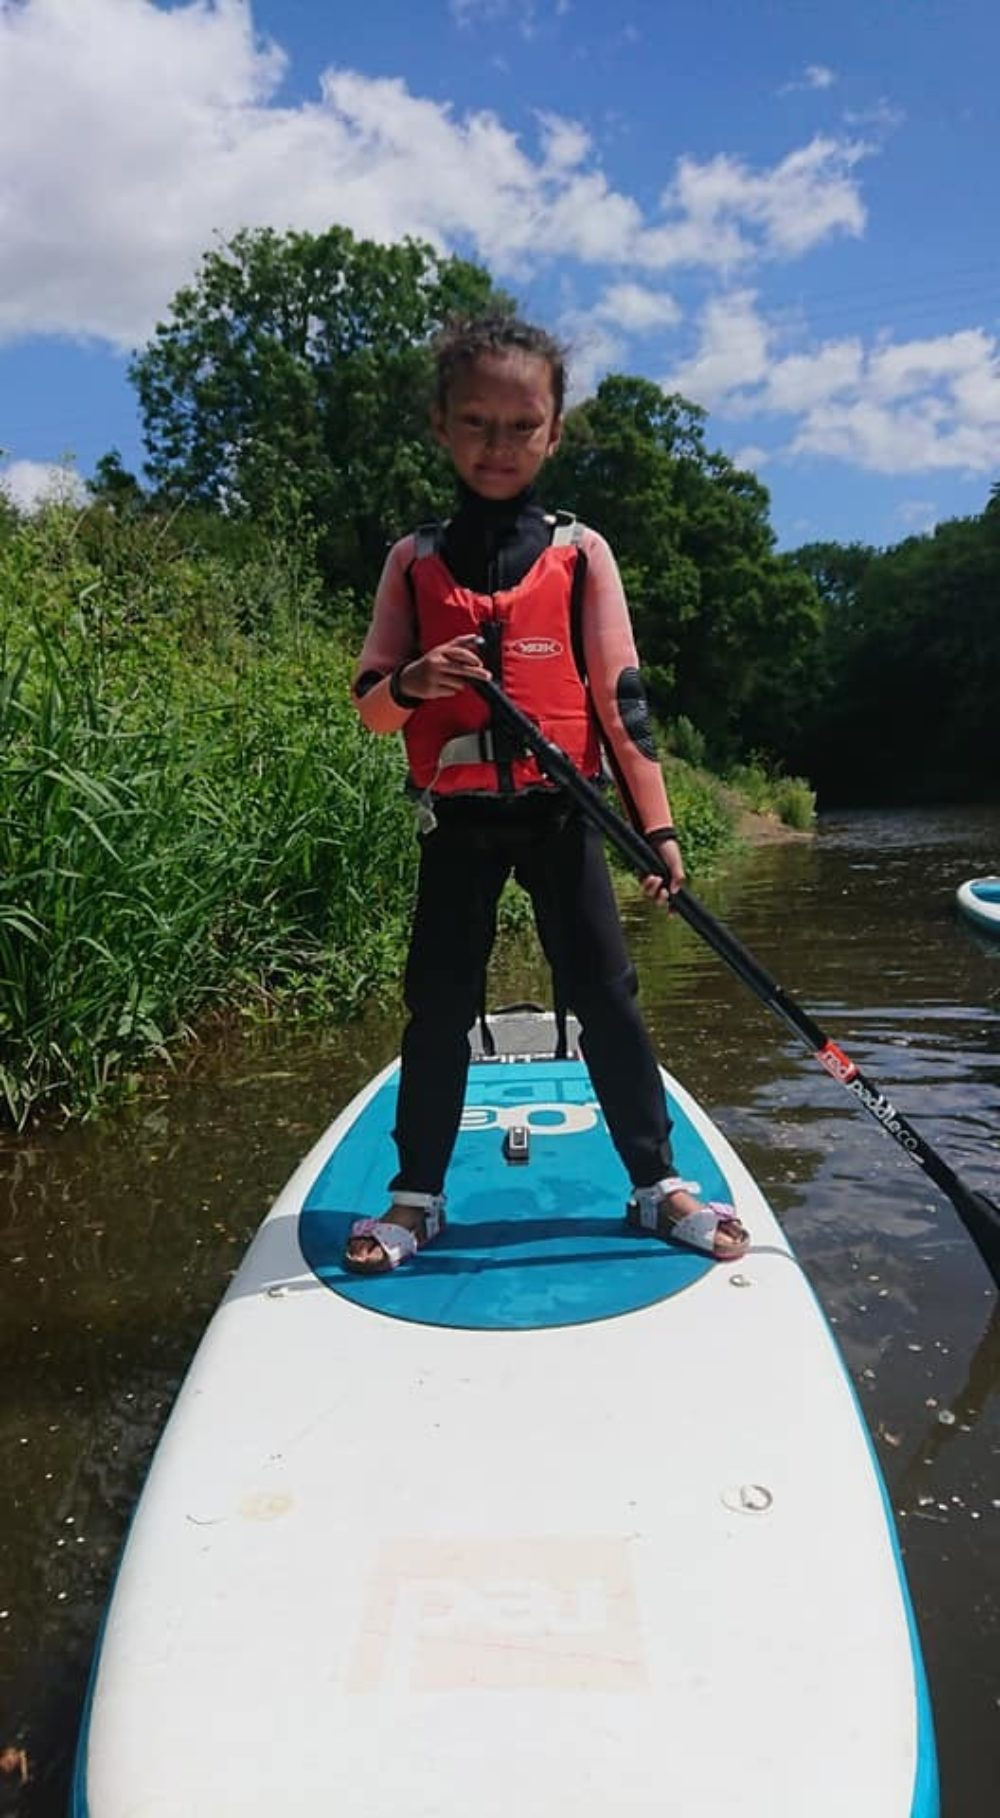 Aase Sup Solo Yp May 2019 1